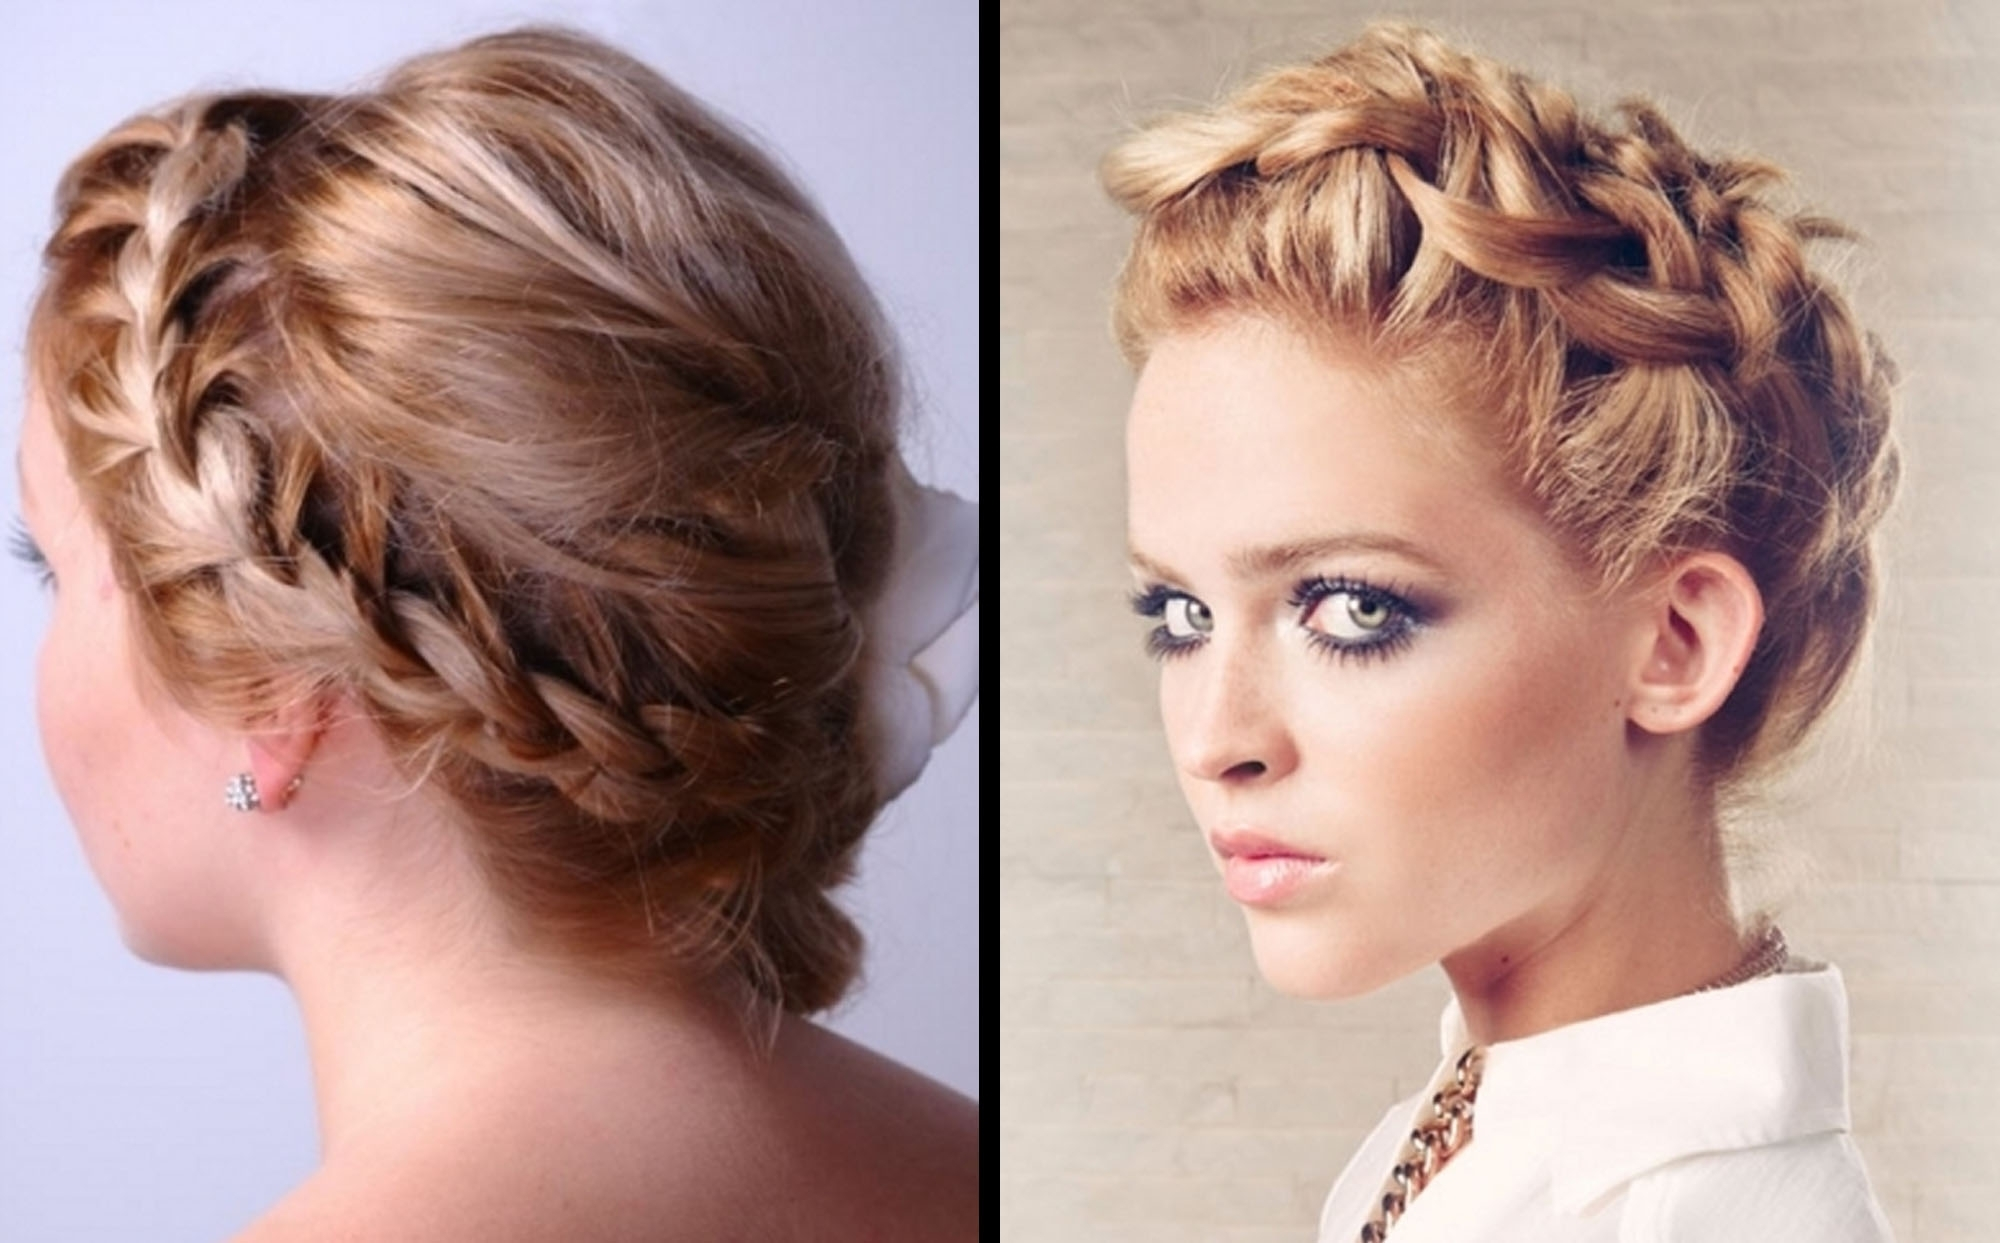 Formal Hairstyles Braided Updo Wedding Hairdo Hair | Medium Hair With Regard To Women's Updo Hairstyles (View 9 of 15)